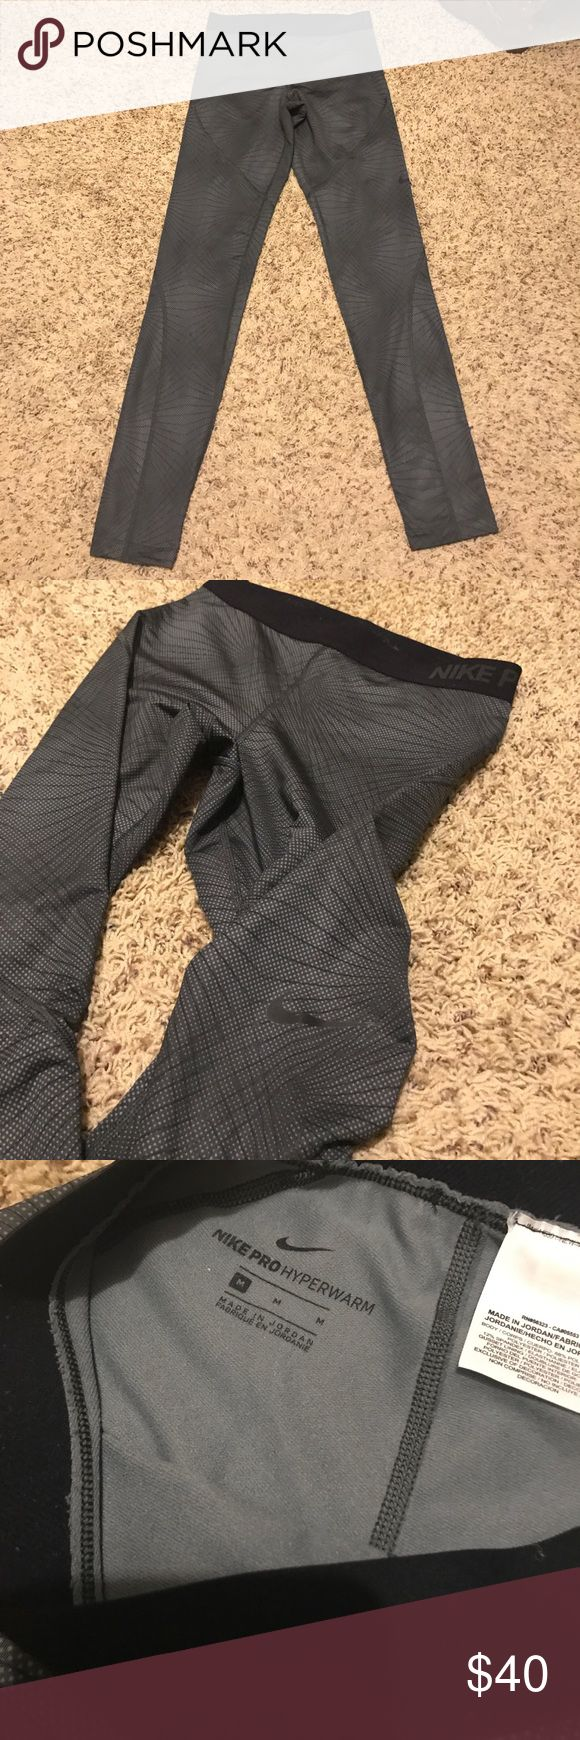 Hyper warm leggings Used one time for layering while skiing Nike Pants Leggings